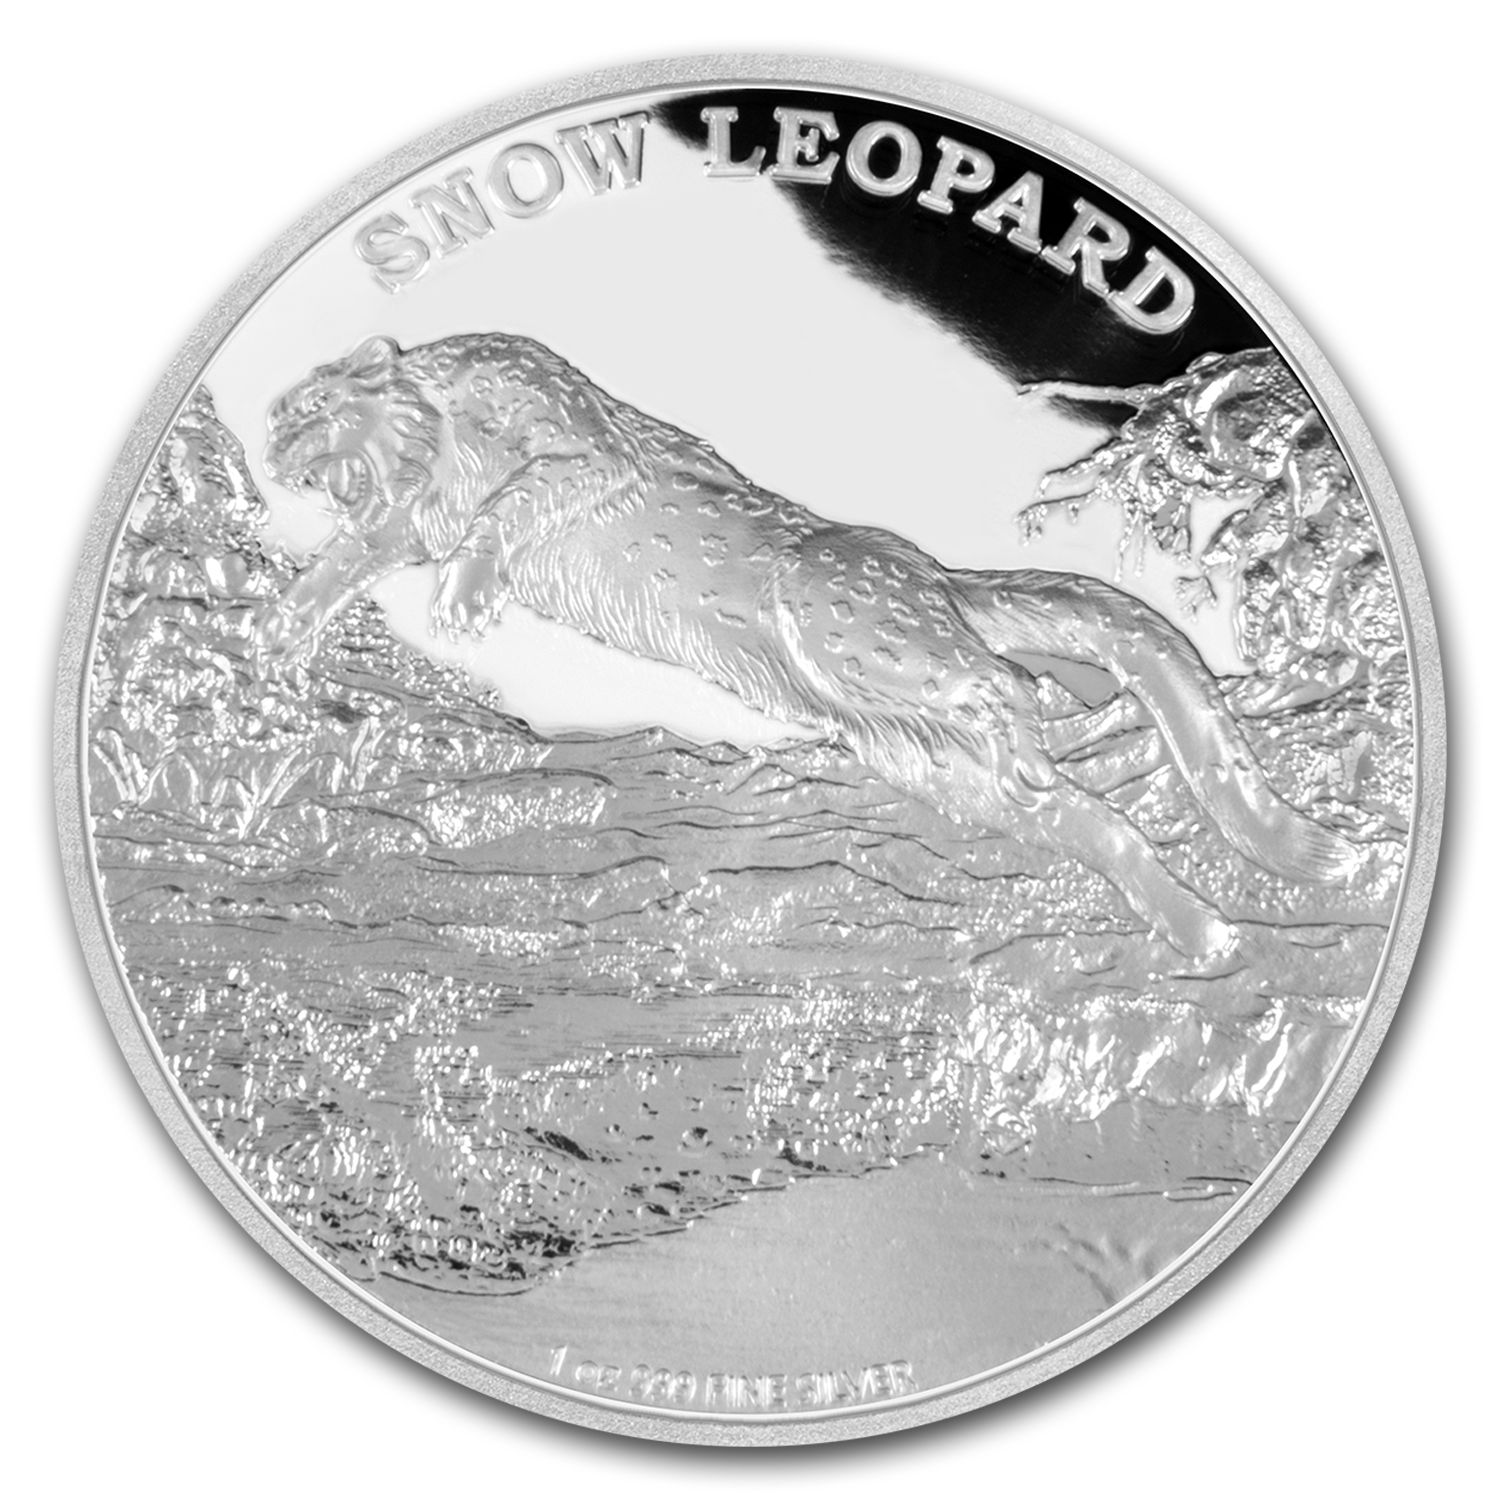 2016 Niue 1 oz Silver Endangered Species Snow Leopard